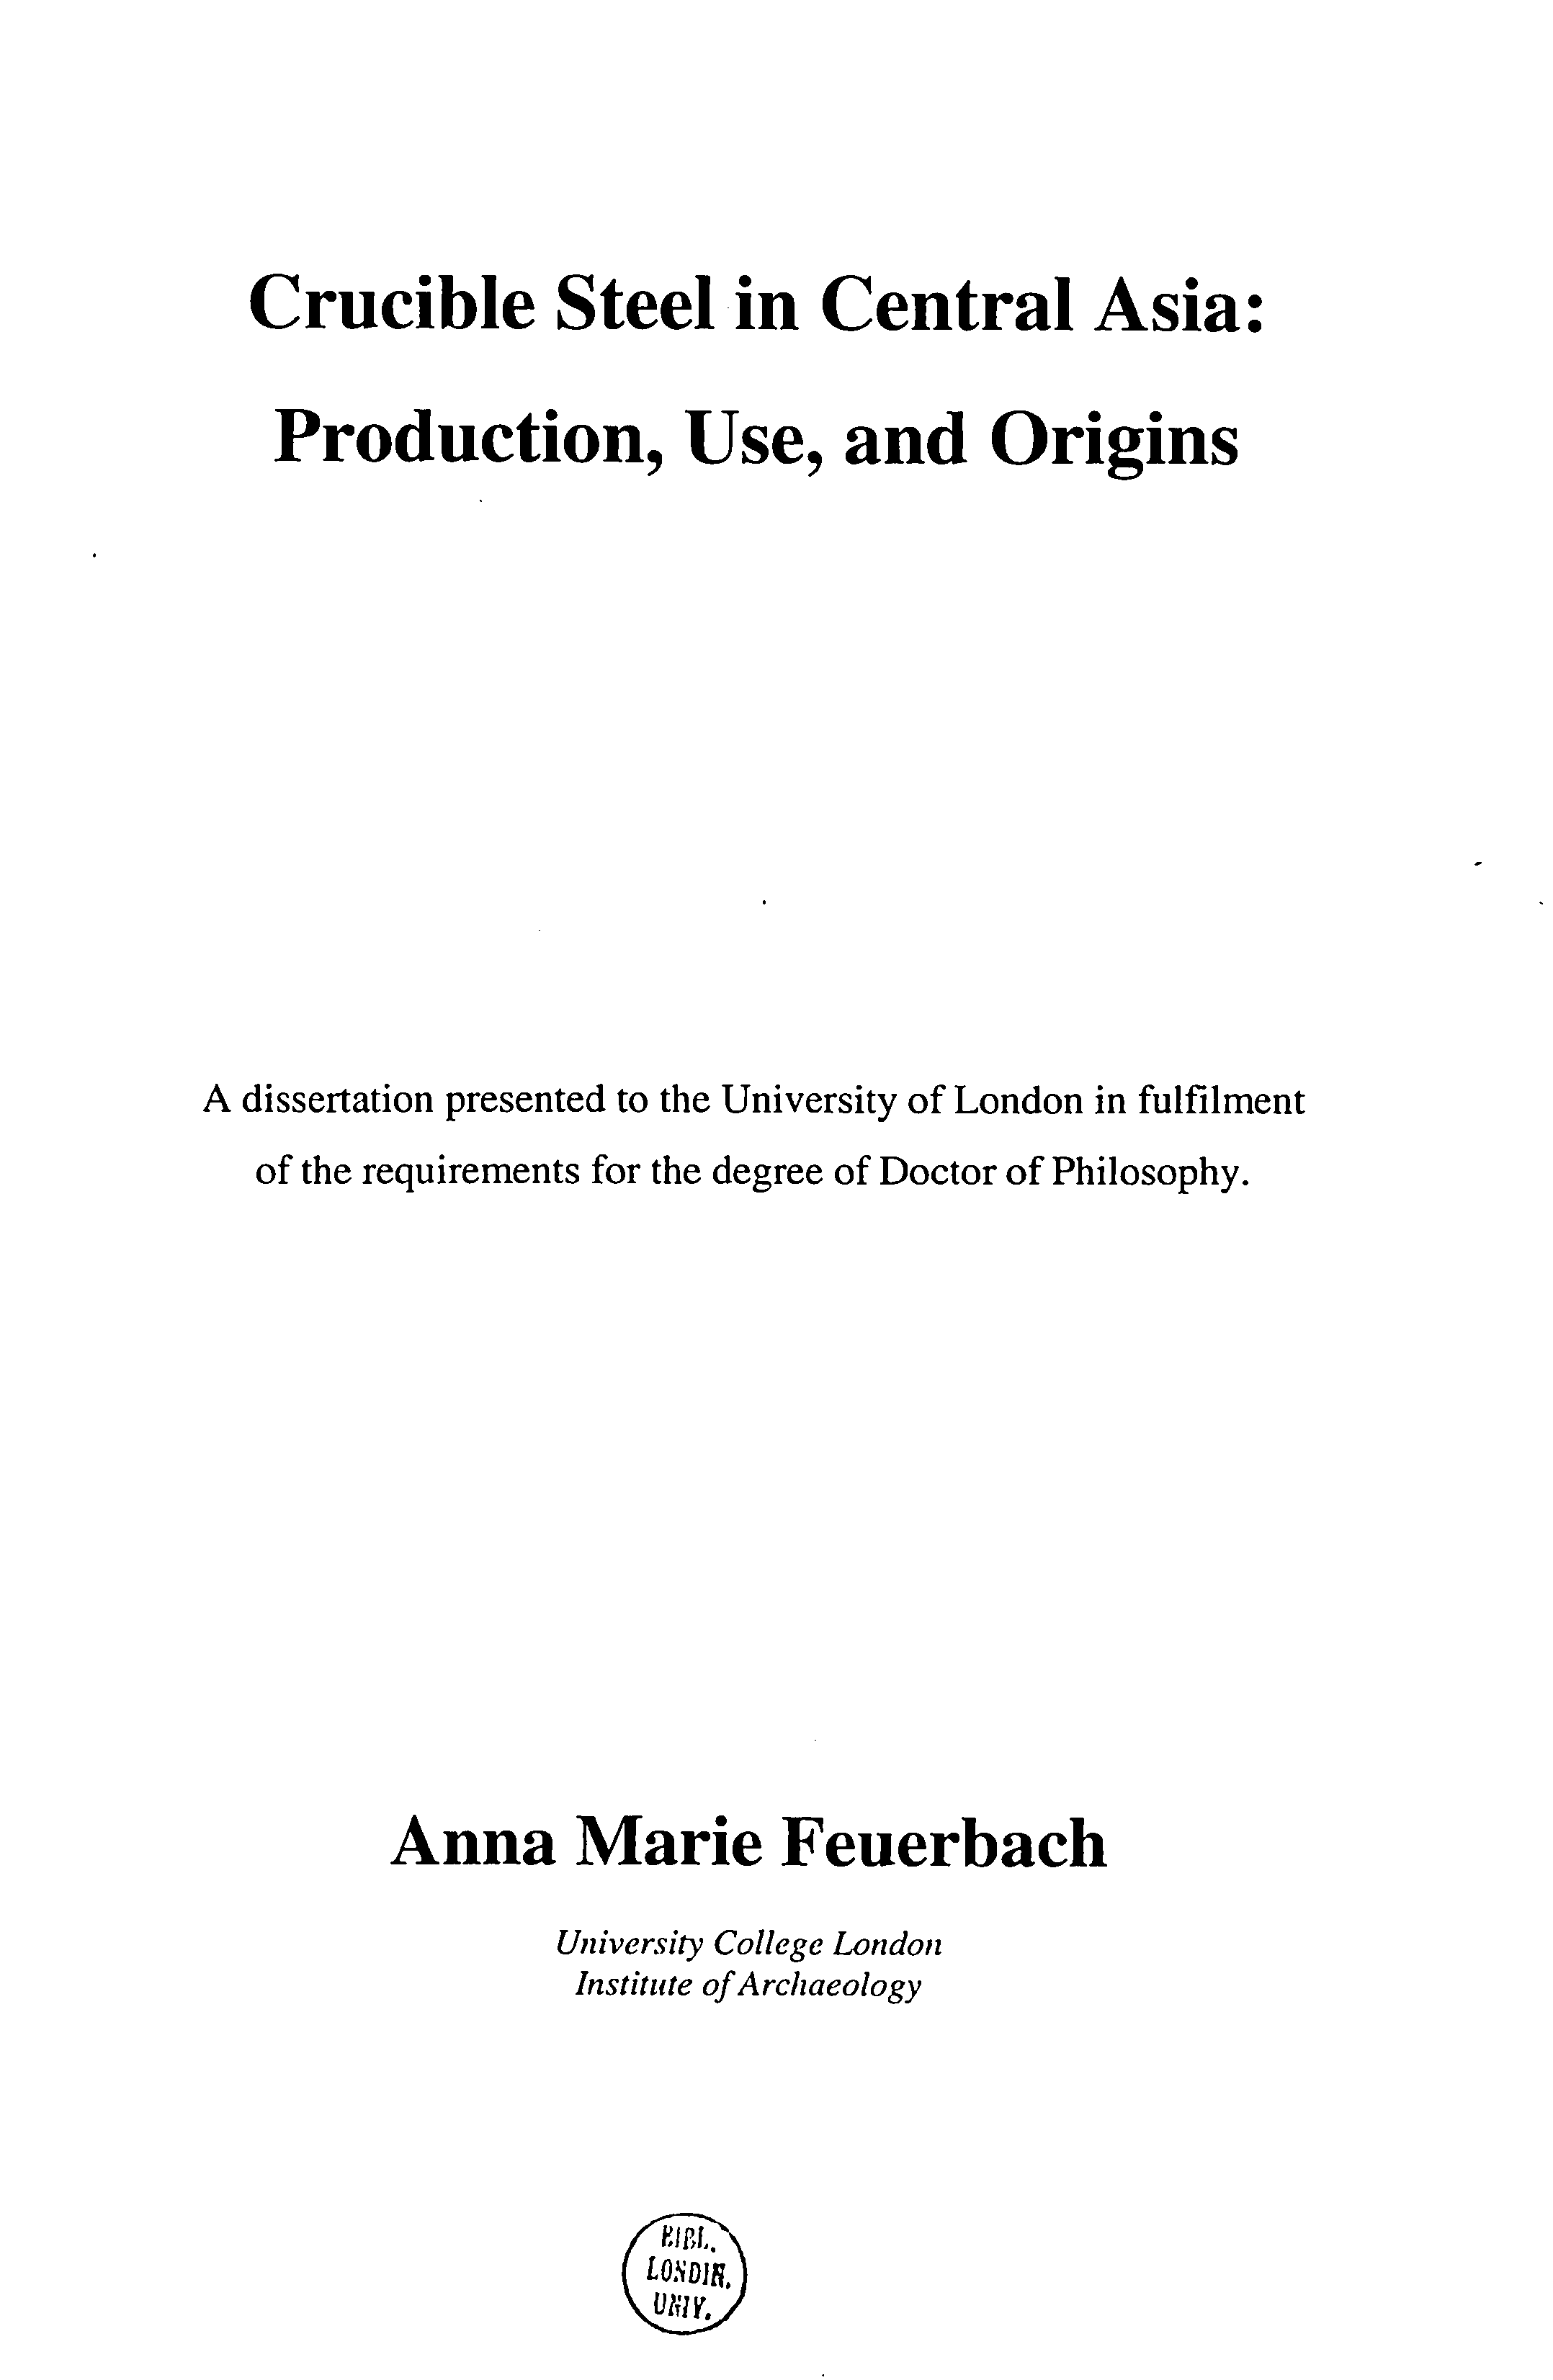 Pdf Crucible Steel In Central Asia Production Use And Origins Ann Feuerbach Academia Edu